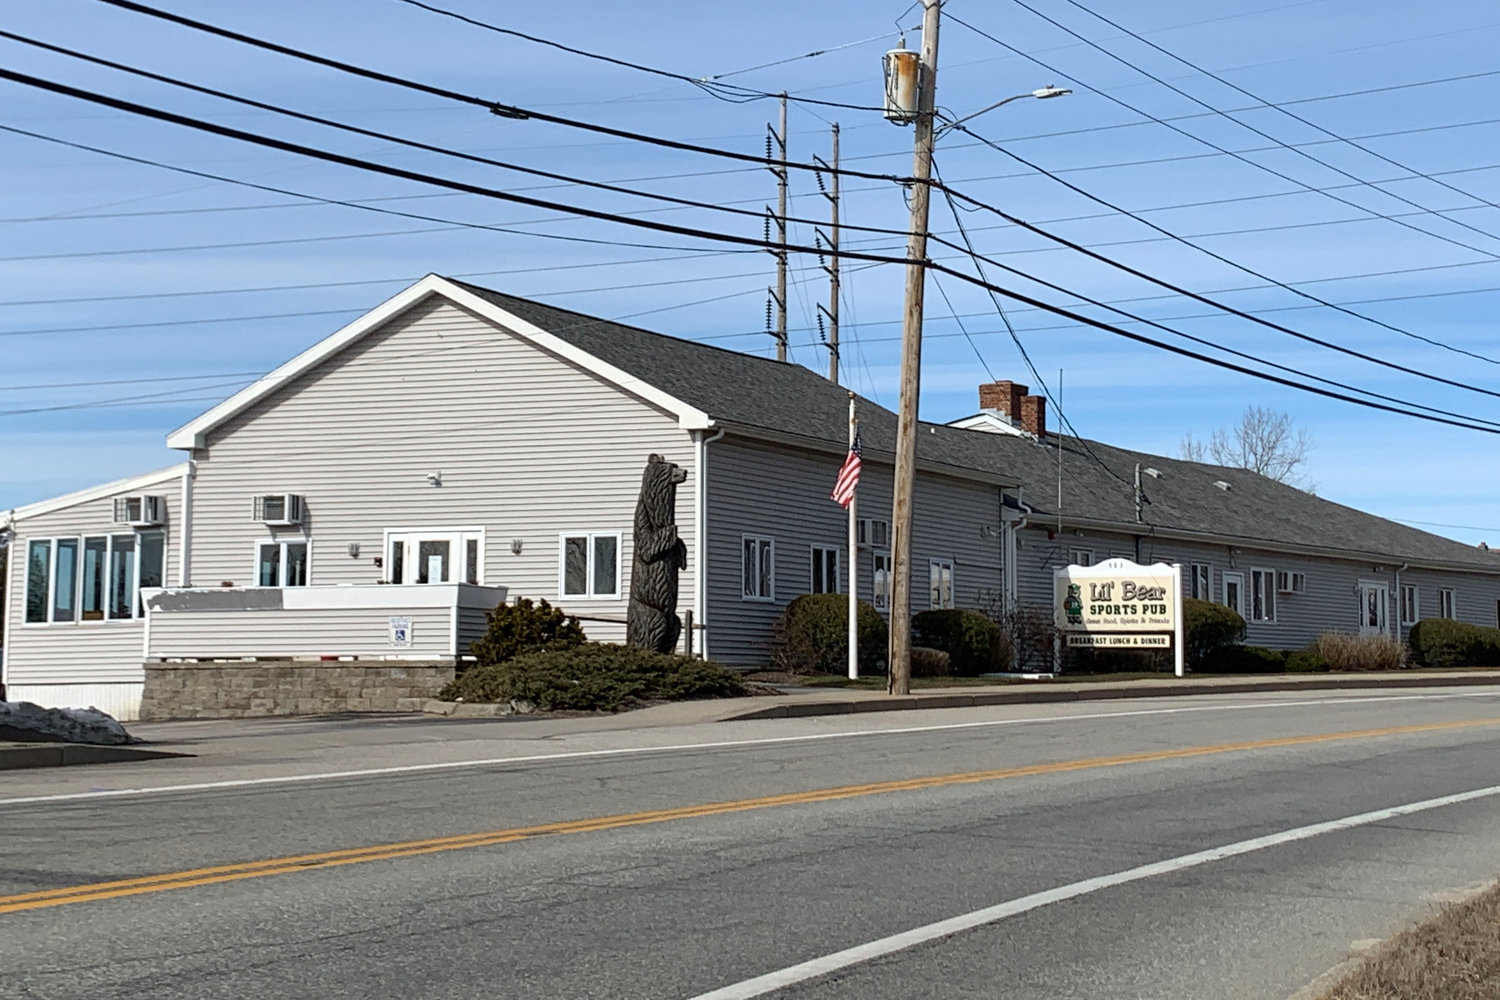 Lil' Bear Sports Lounge at 983 Main Road in Tiverton. The building will next be converted for use as a child care center.